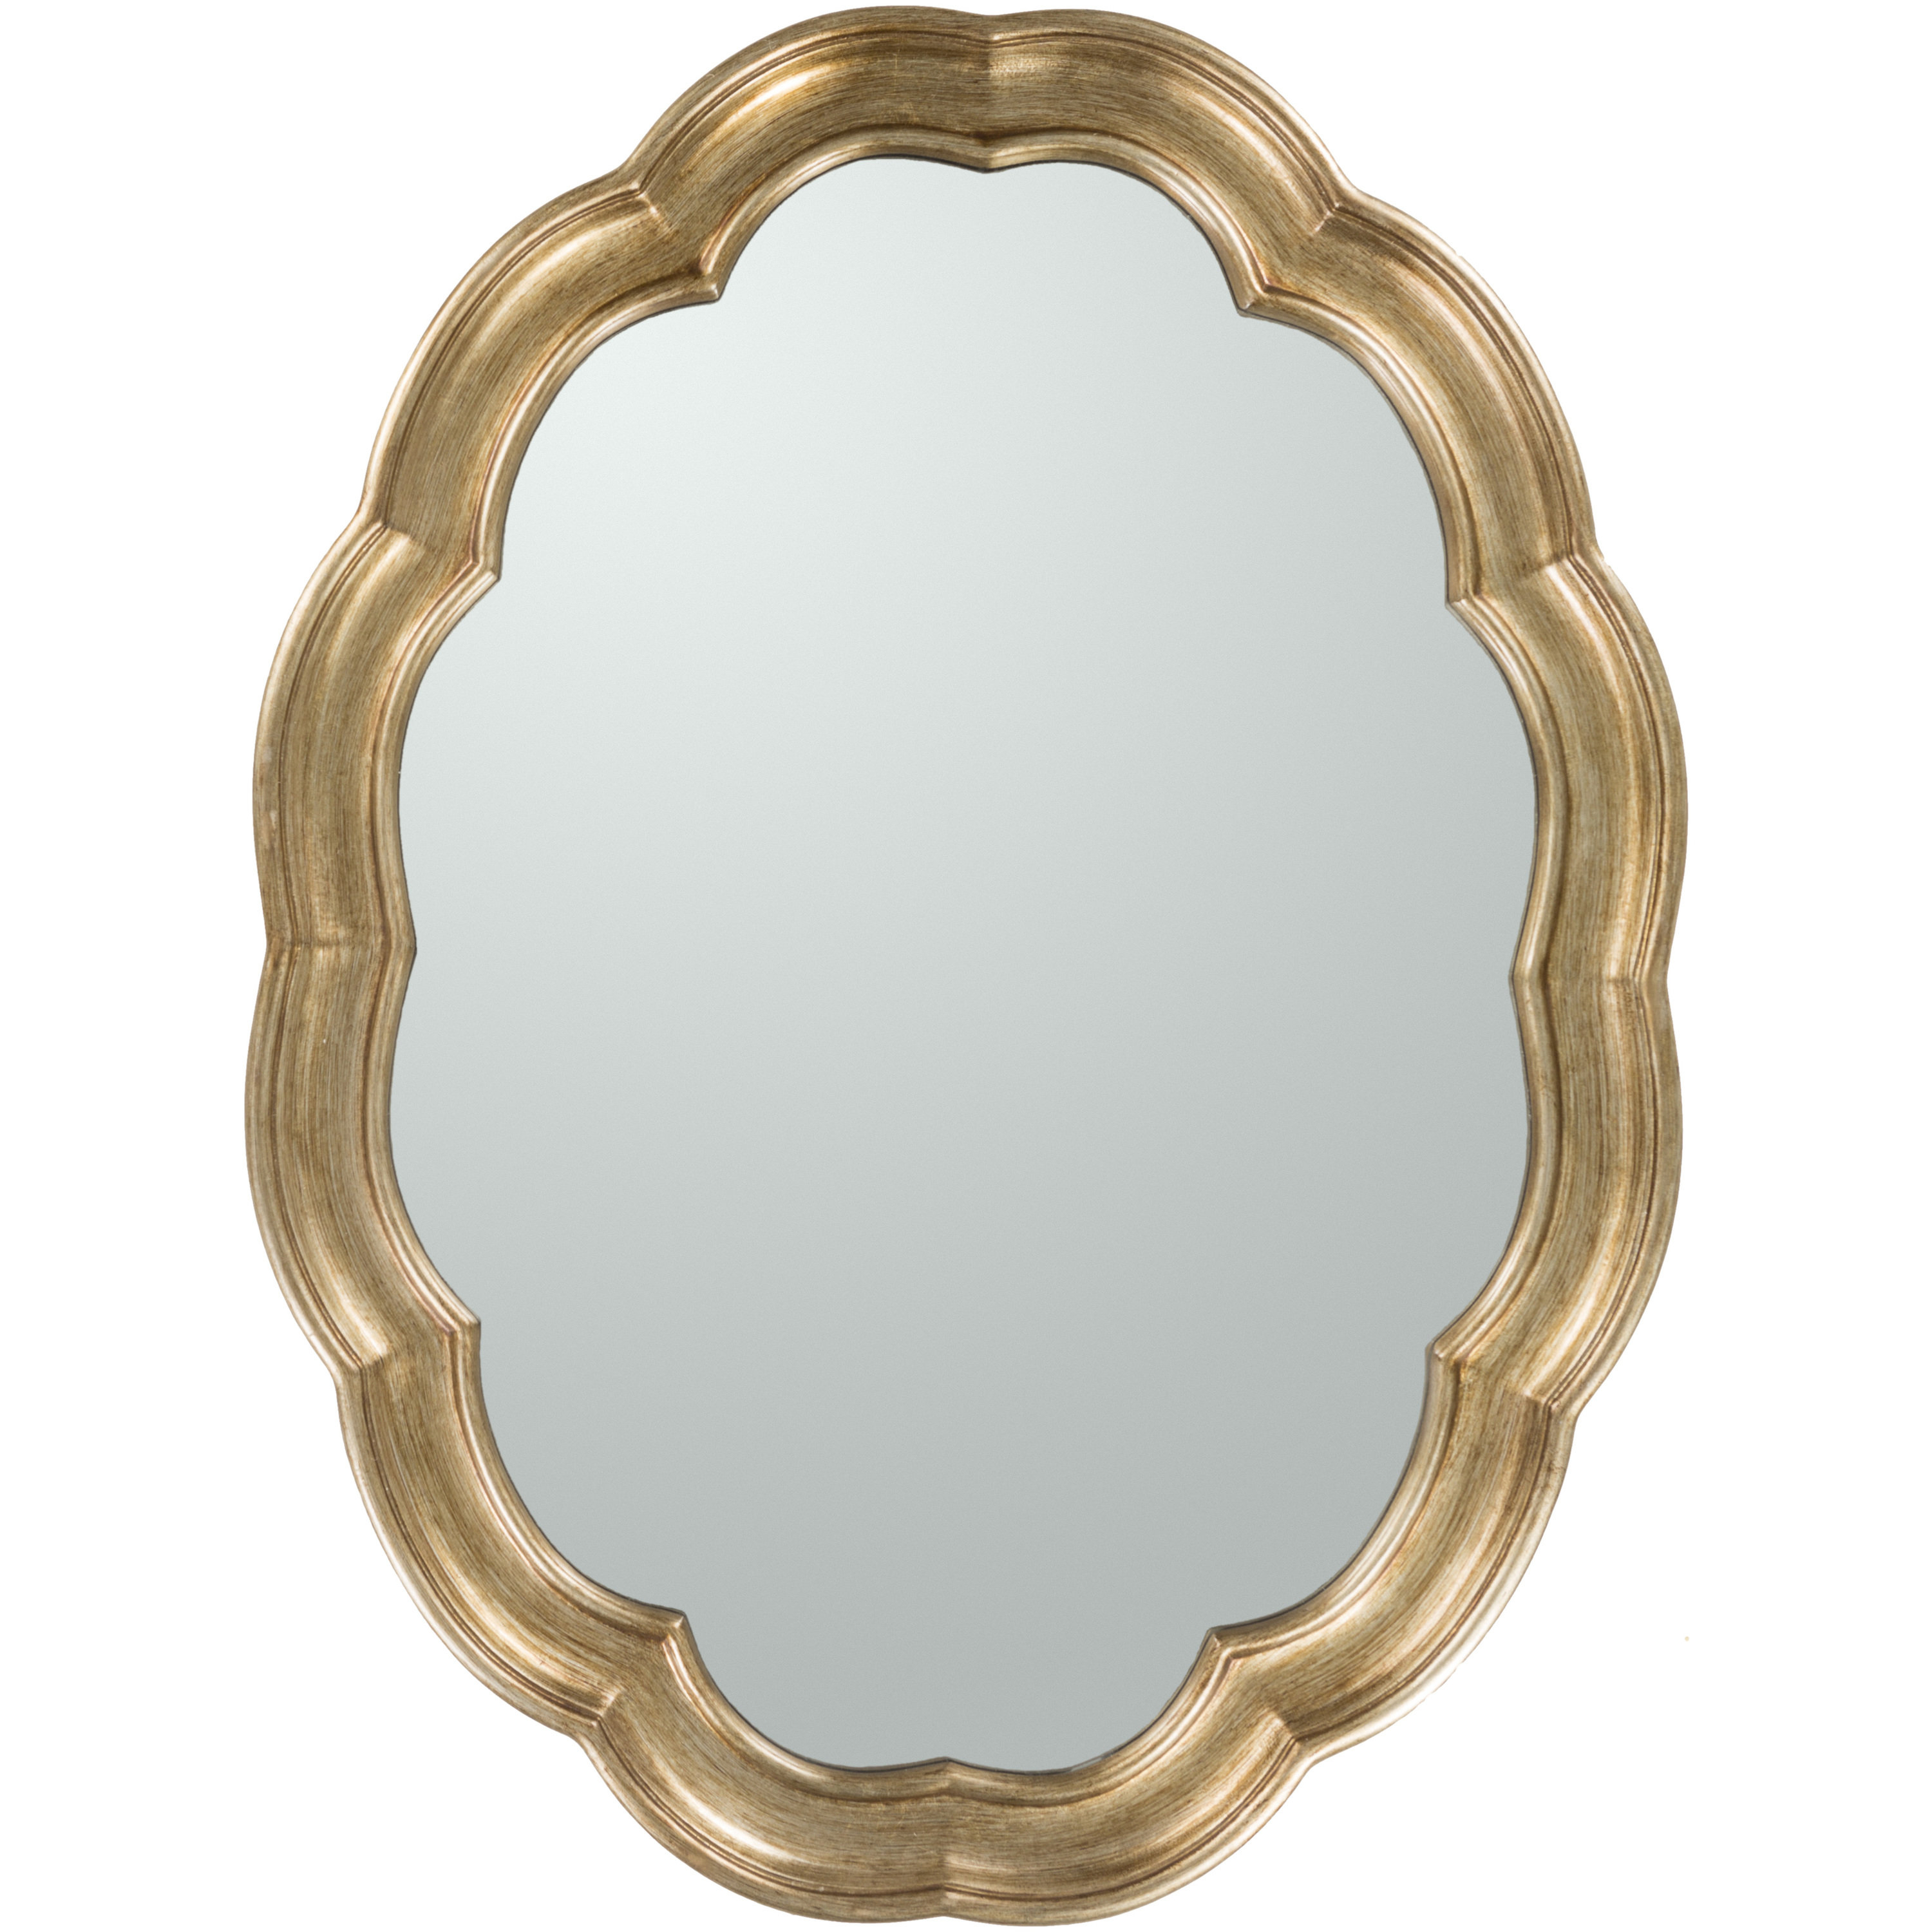 Glam Oval Accent Wall Mirror Pertaining To Padang Irregular Wood Framed Wall Mirrors (View 10 of 20)